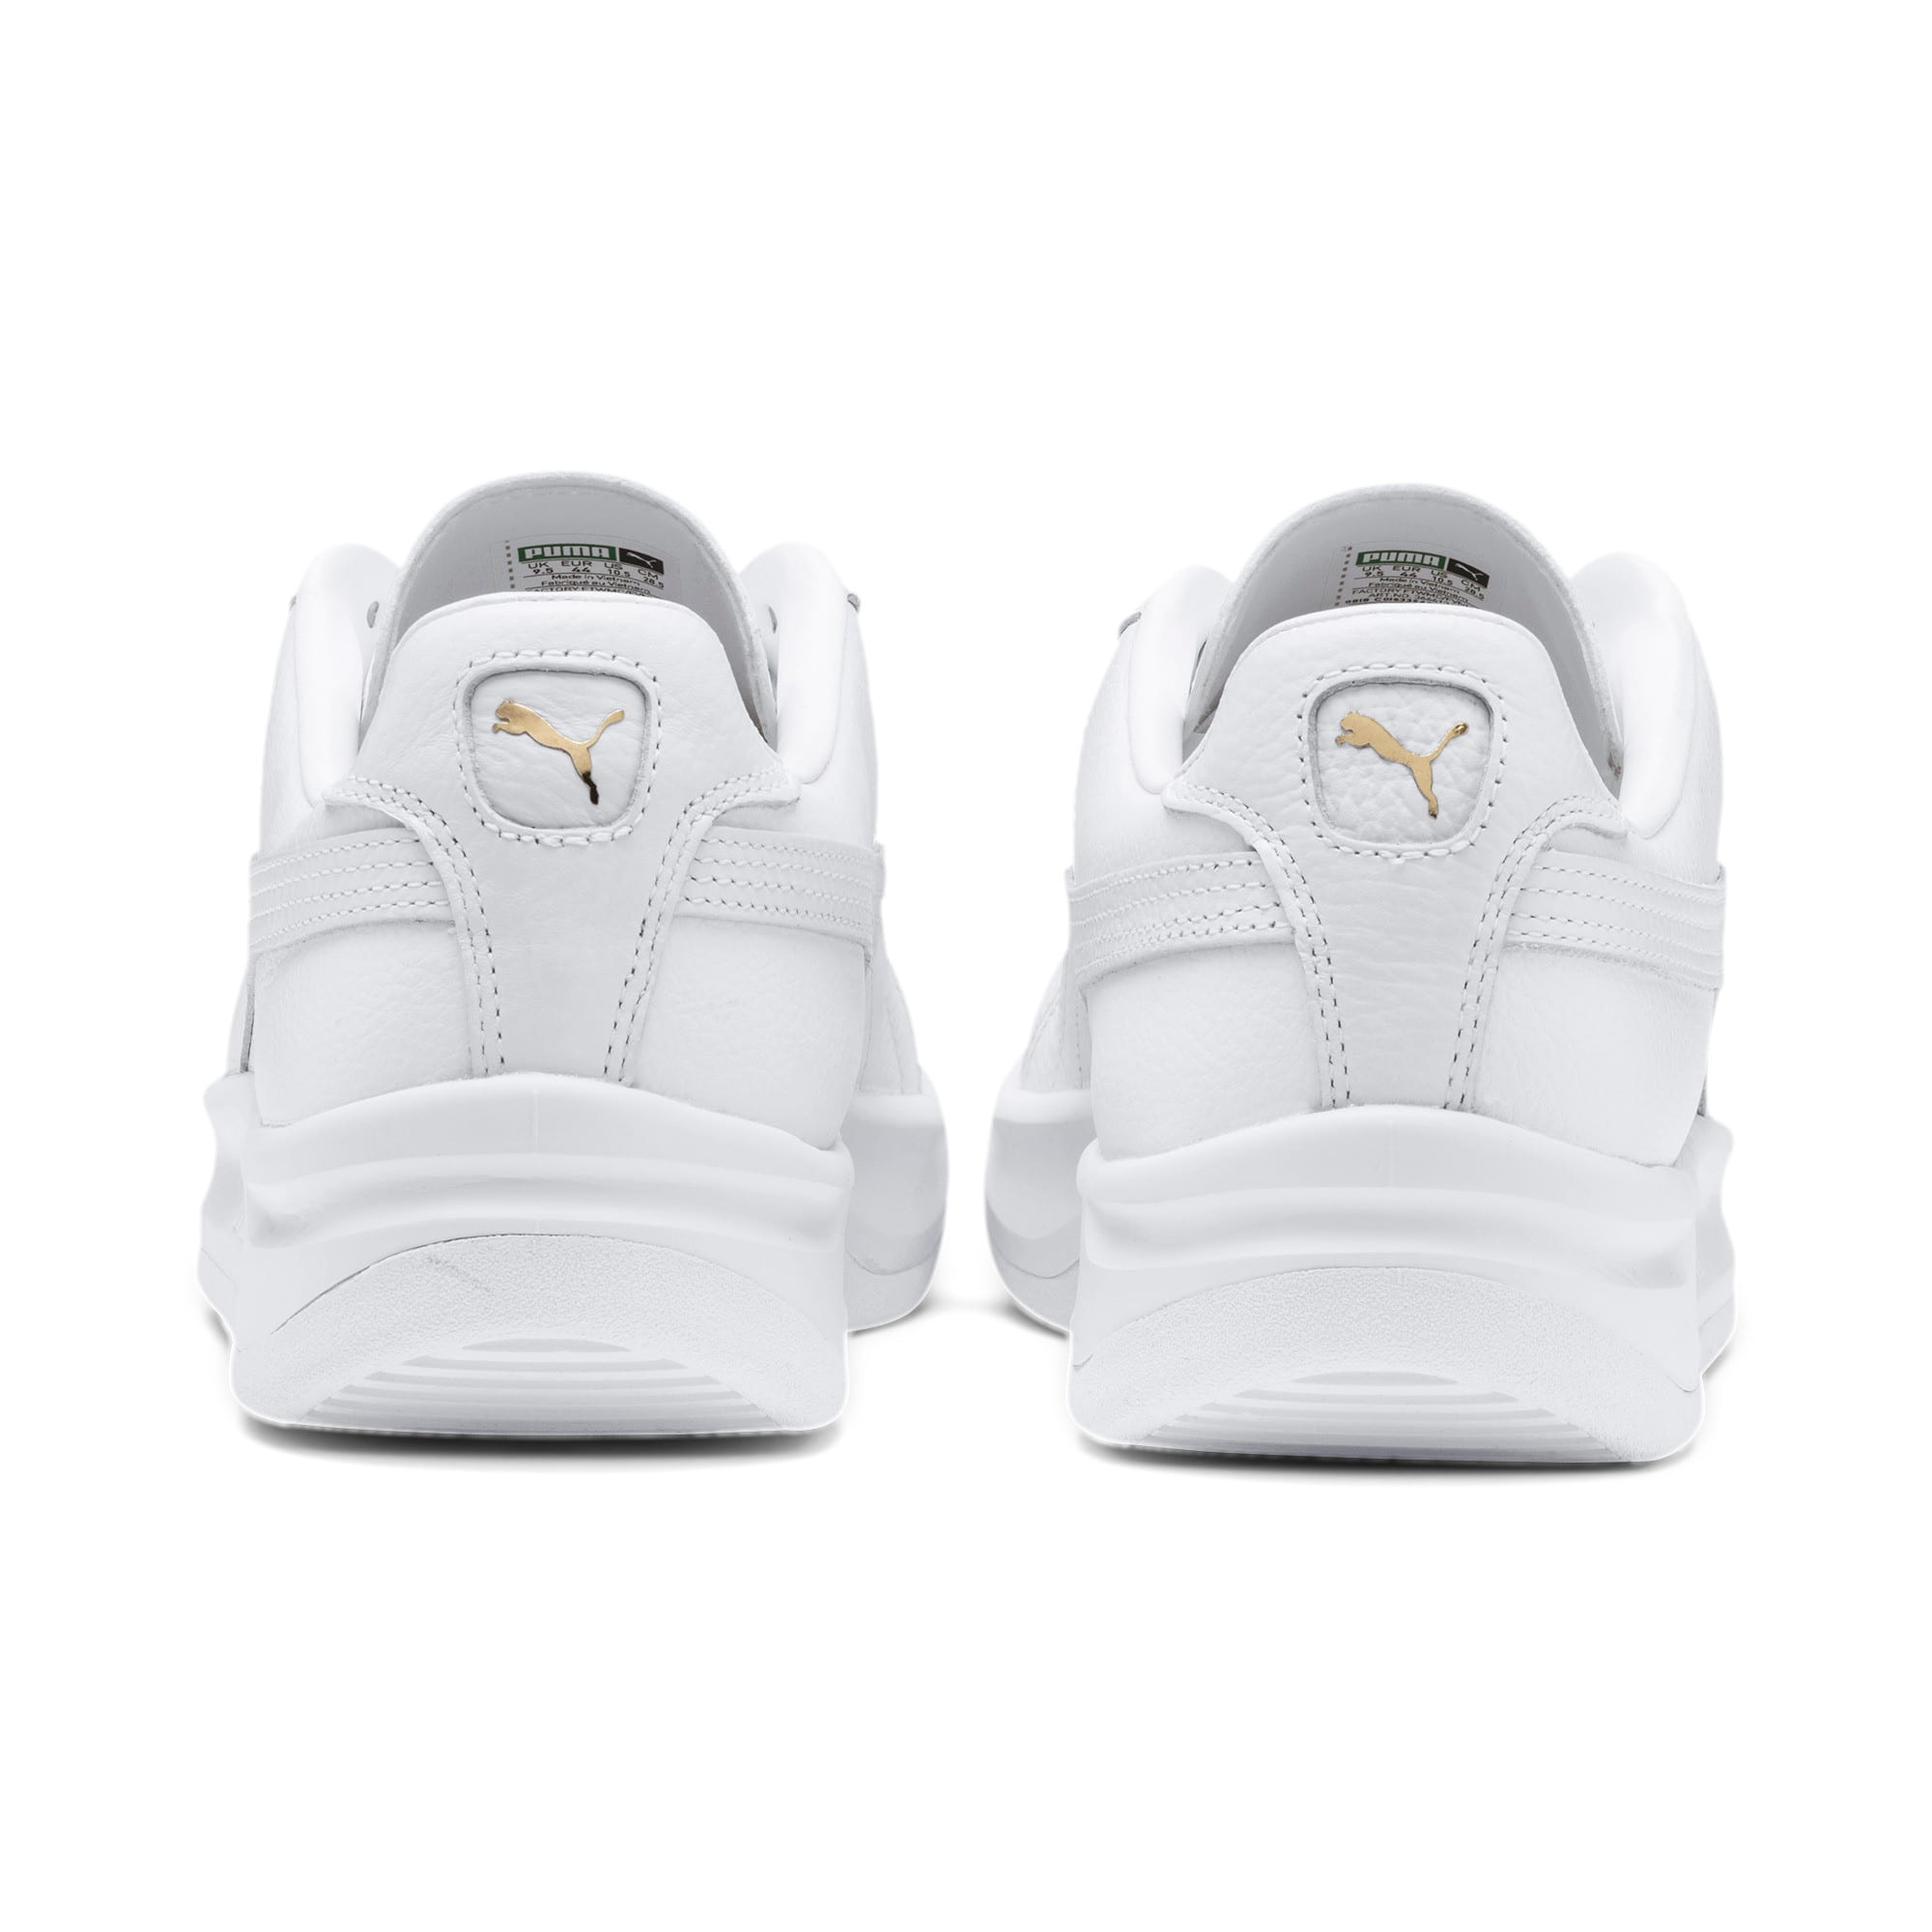 GV Special+ Sneakers, Puma White-Puma White, large